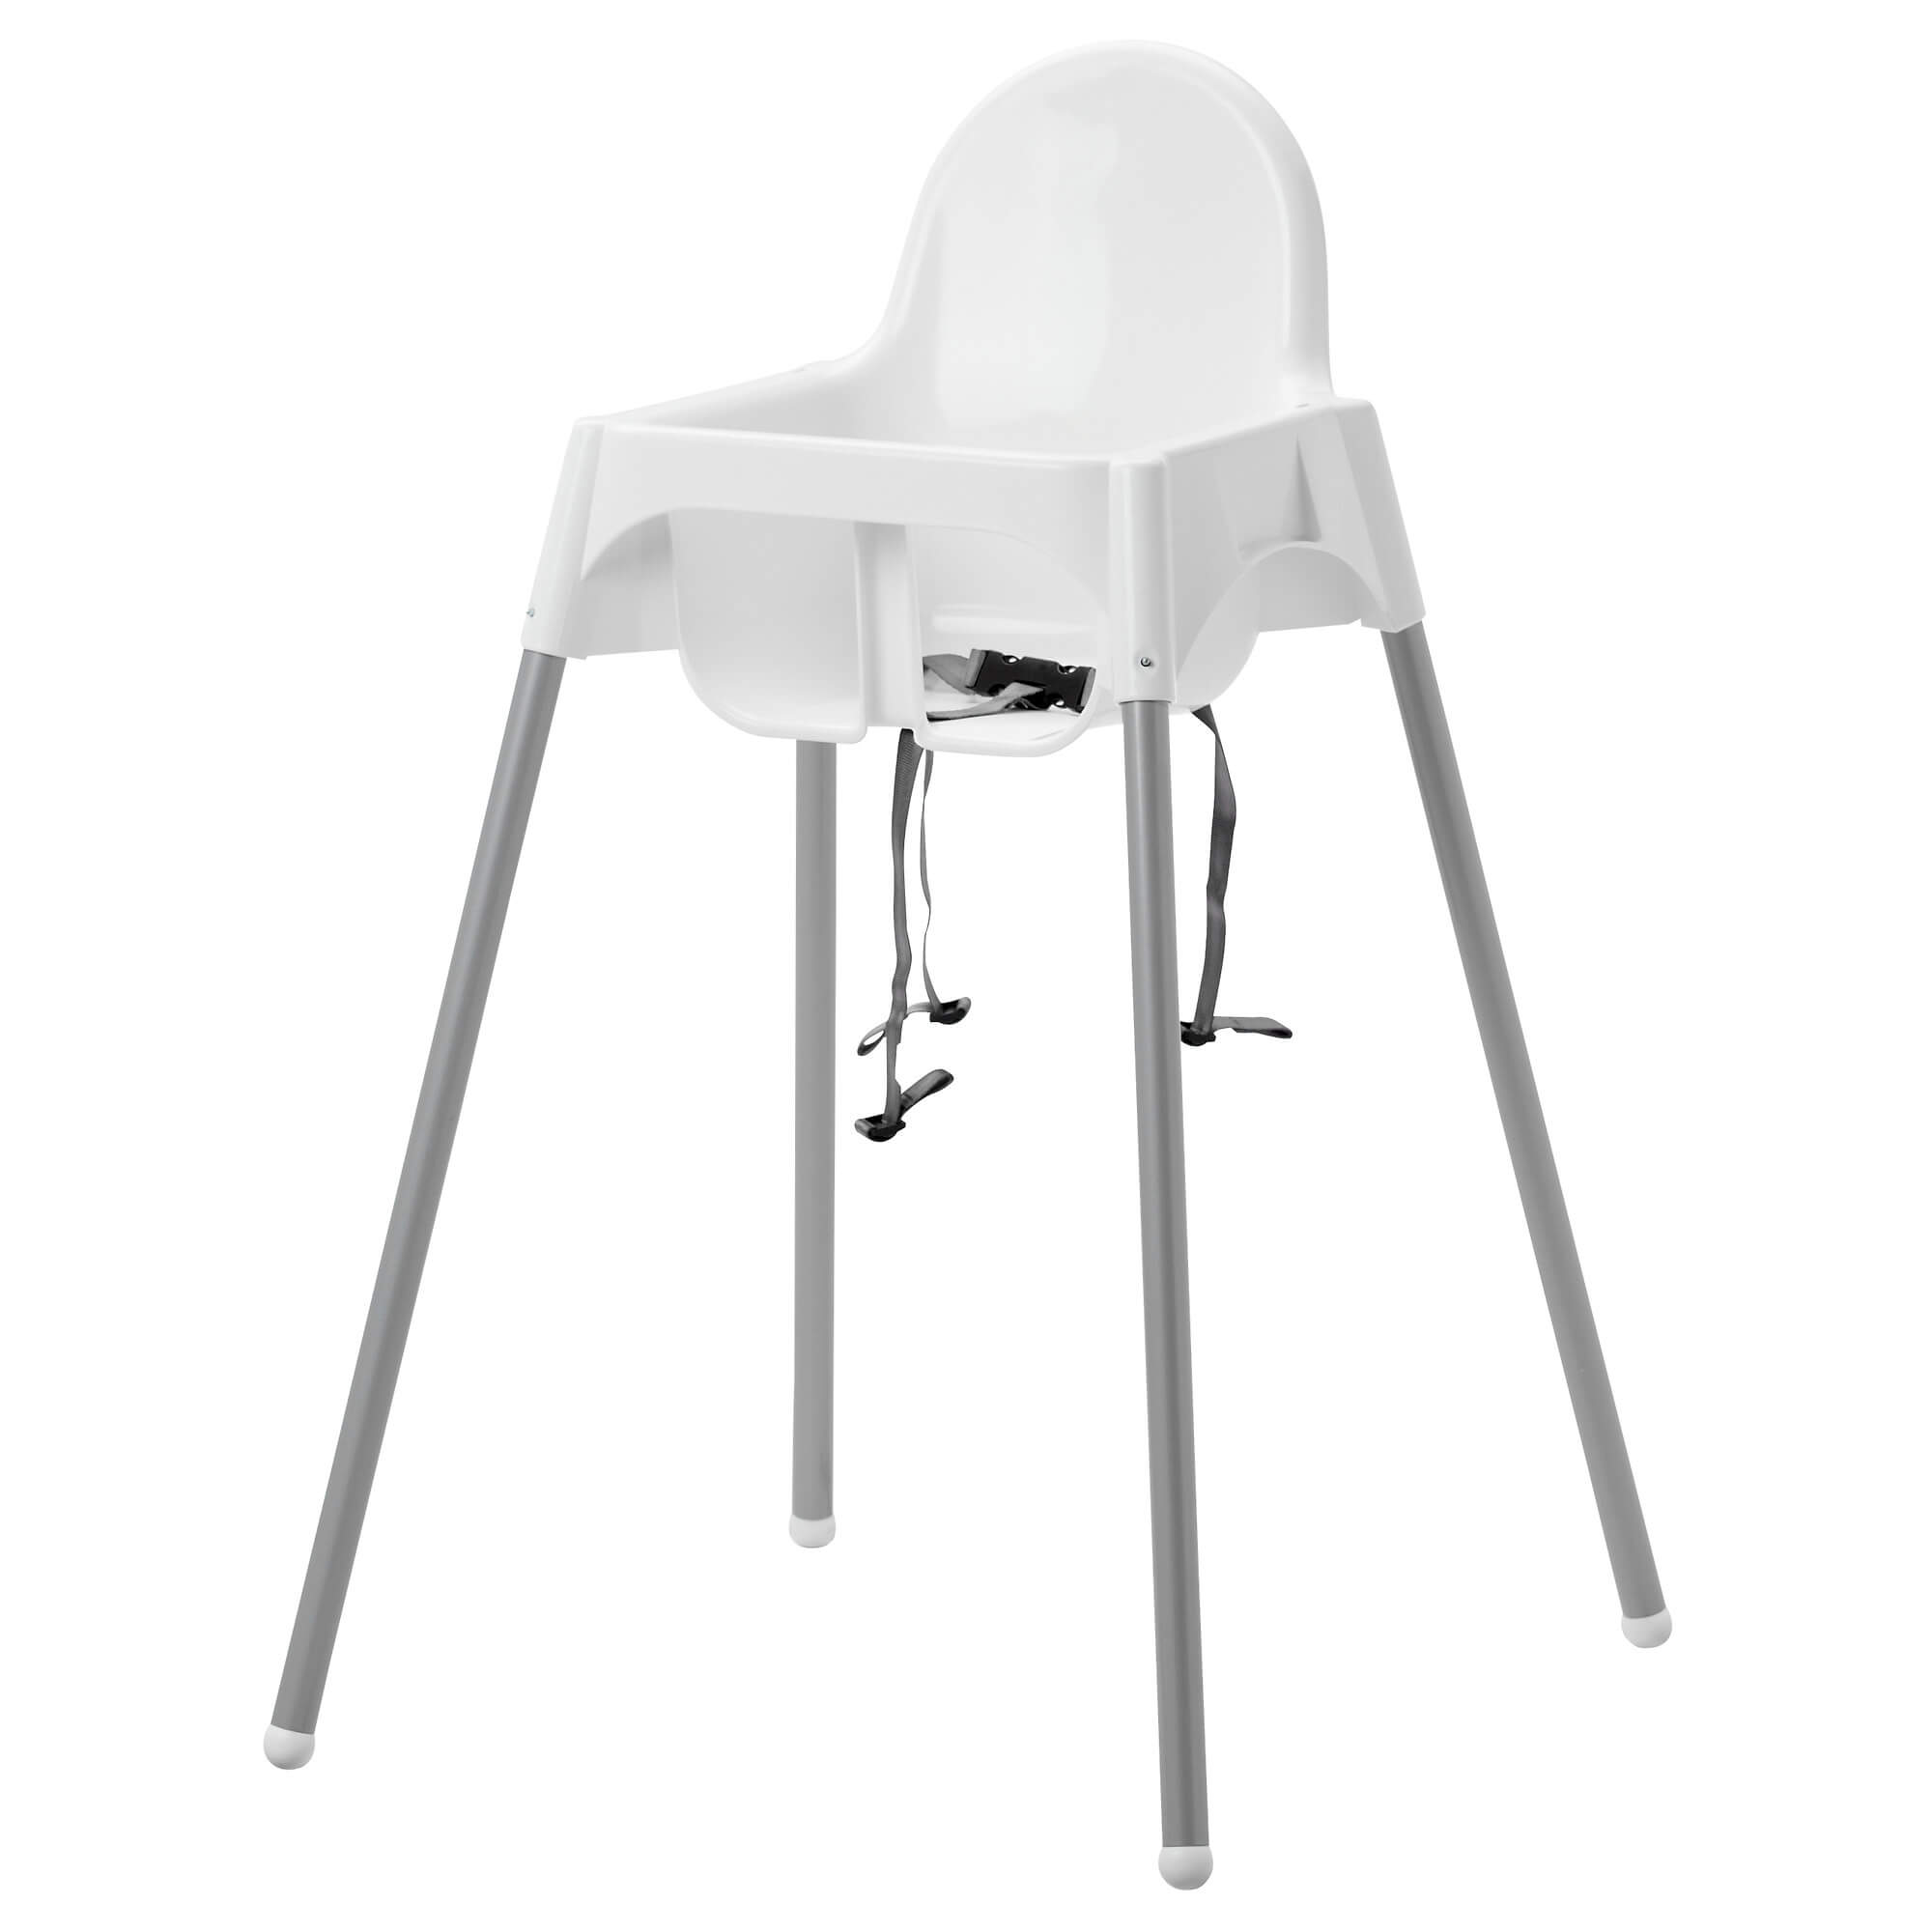 High Chair Tray High Chair Ikea Antilope No Tray